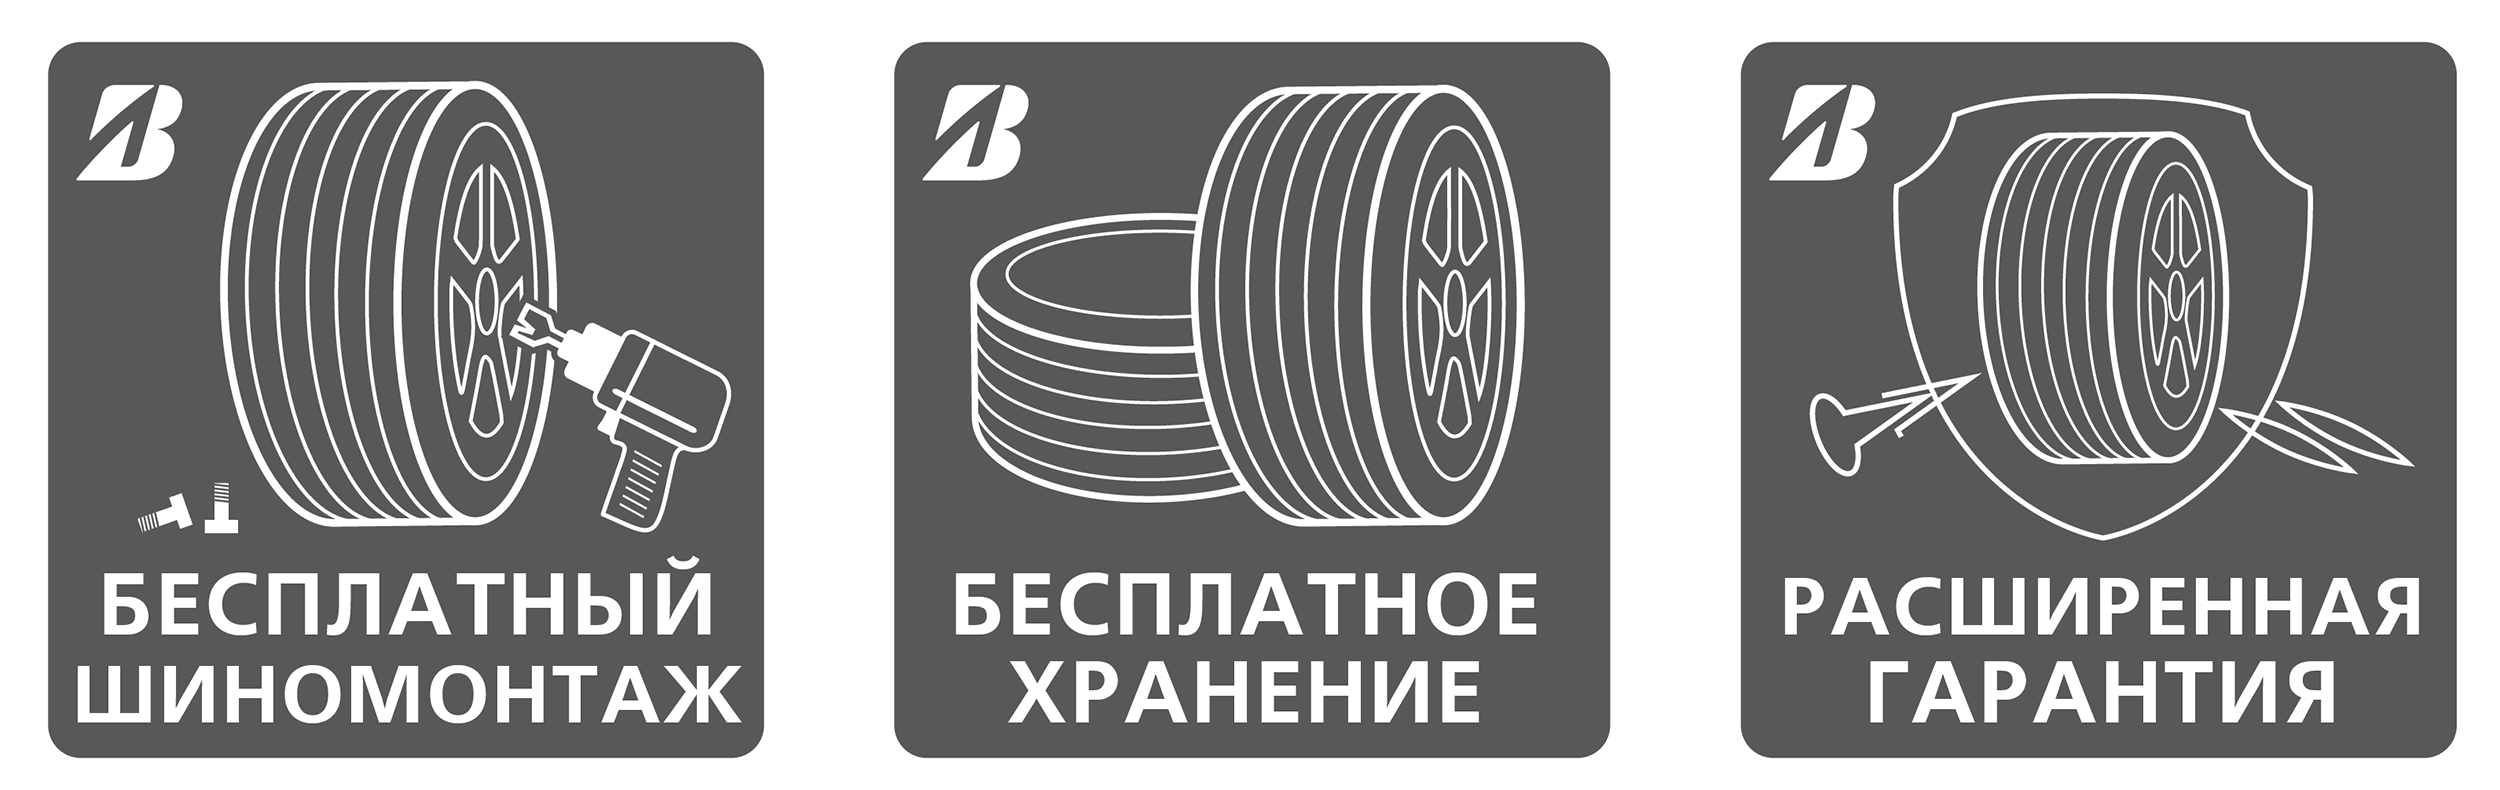 BS_signs_1